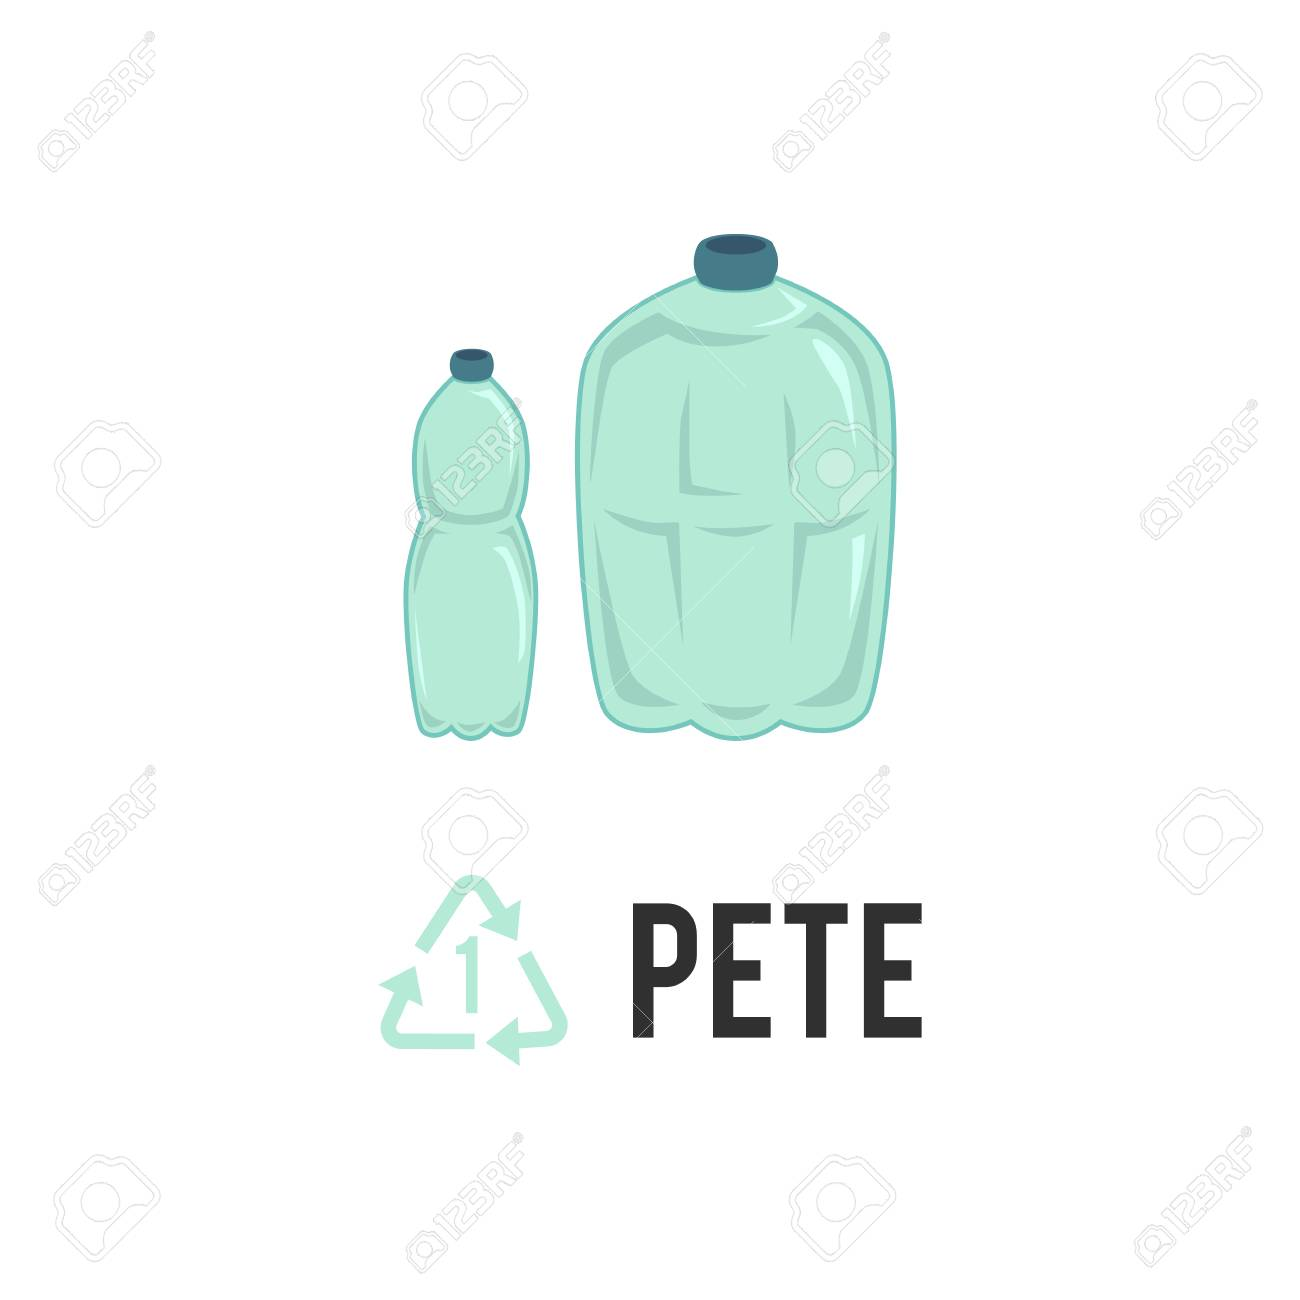 Plastic recycling icon, symbol and sign PETE, PET  Types of plastic